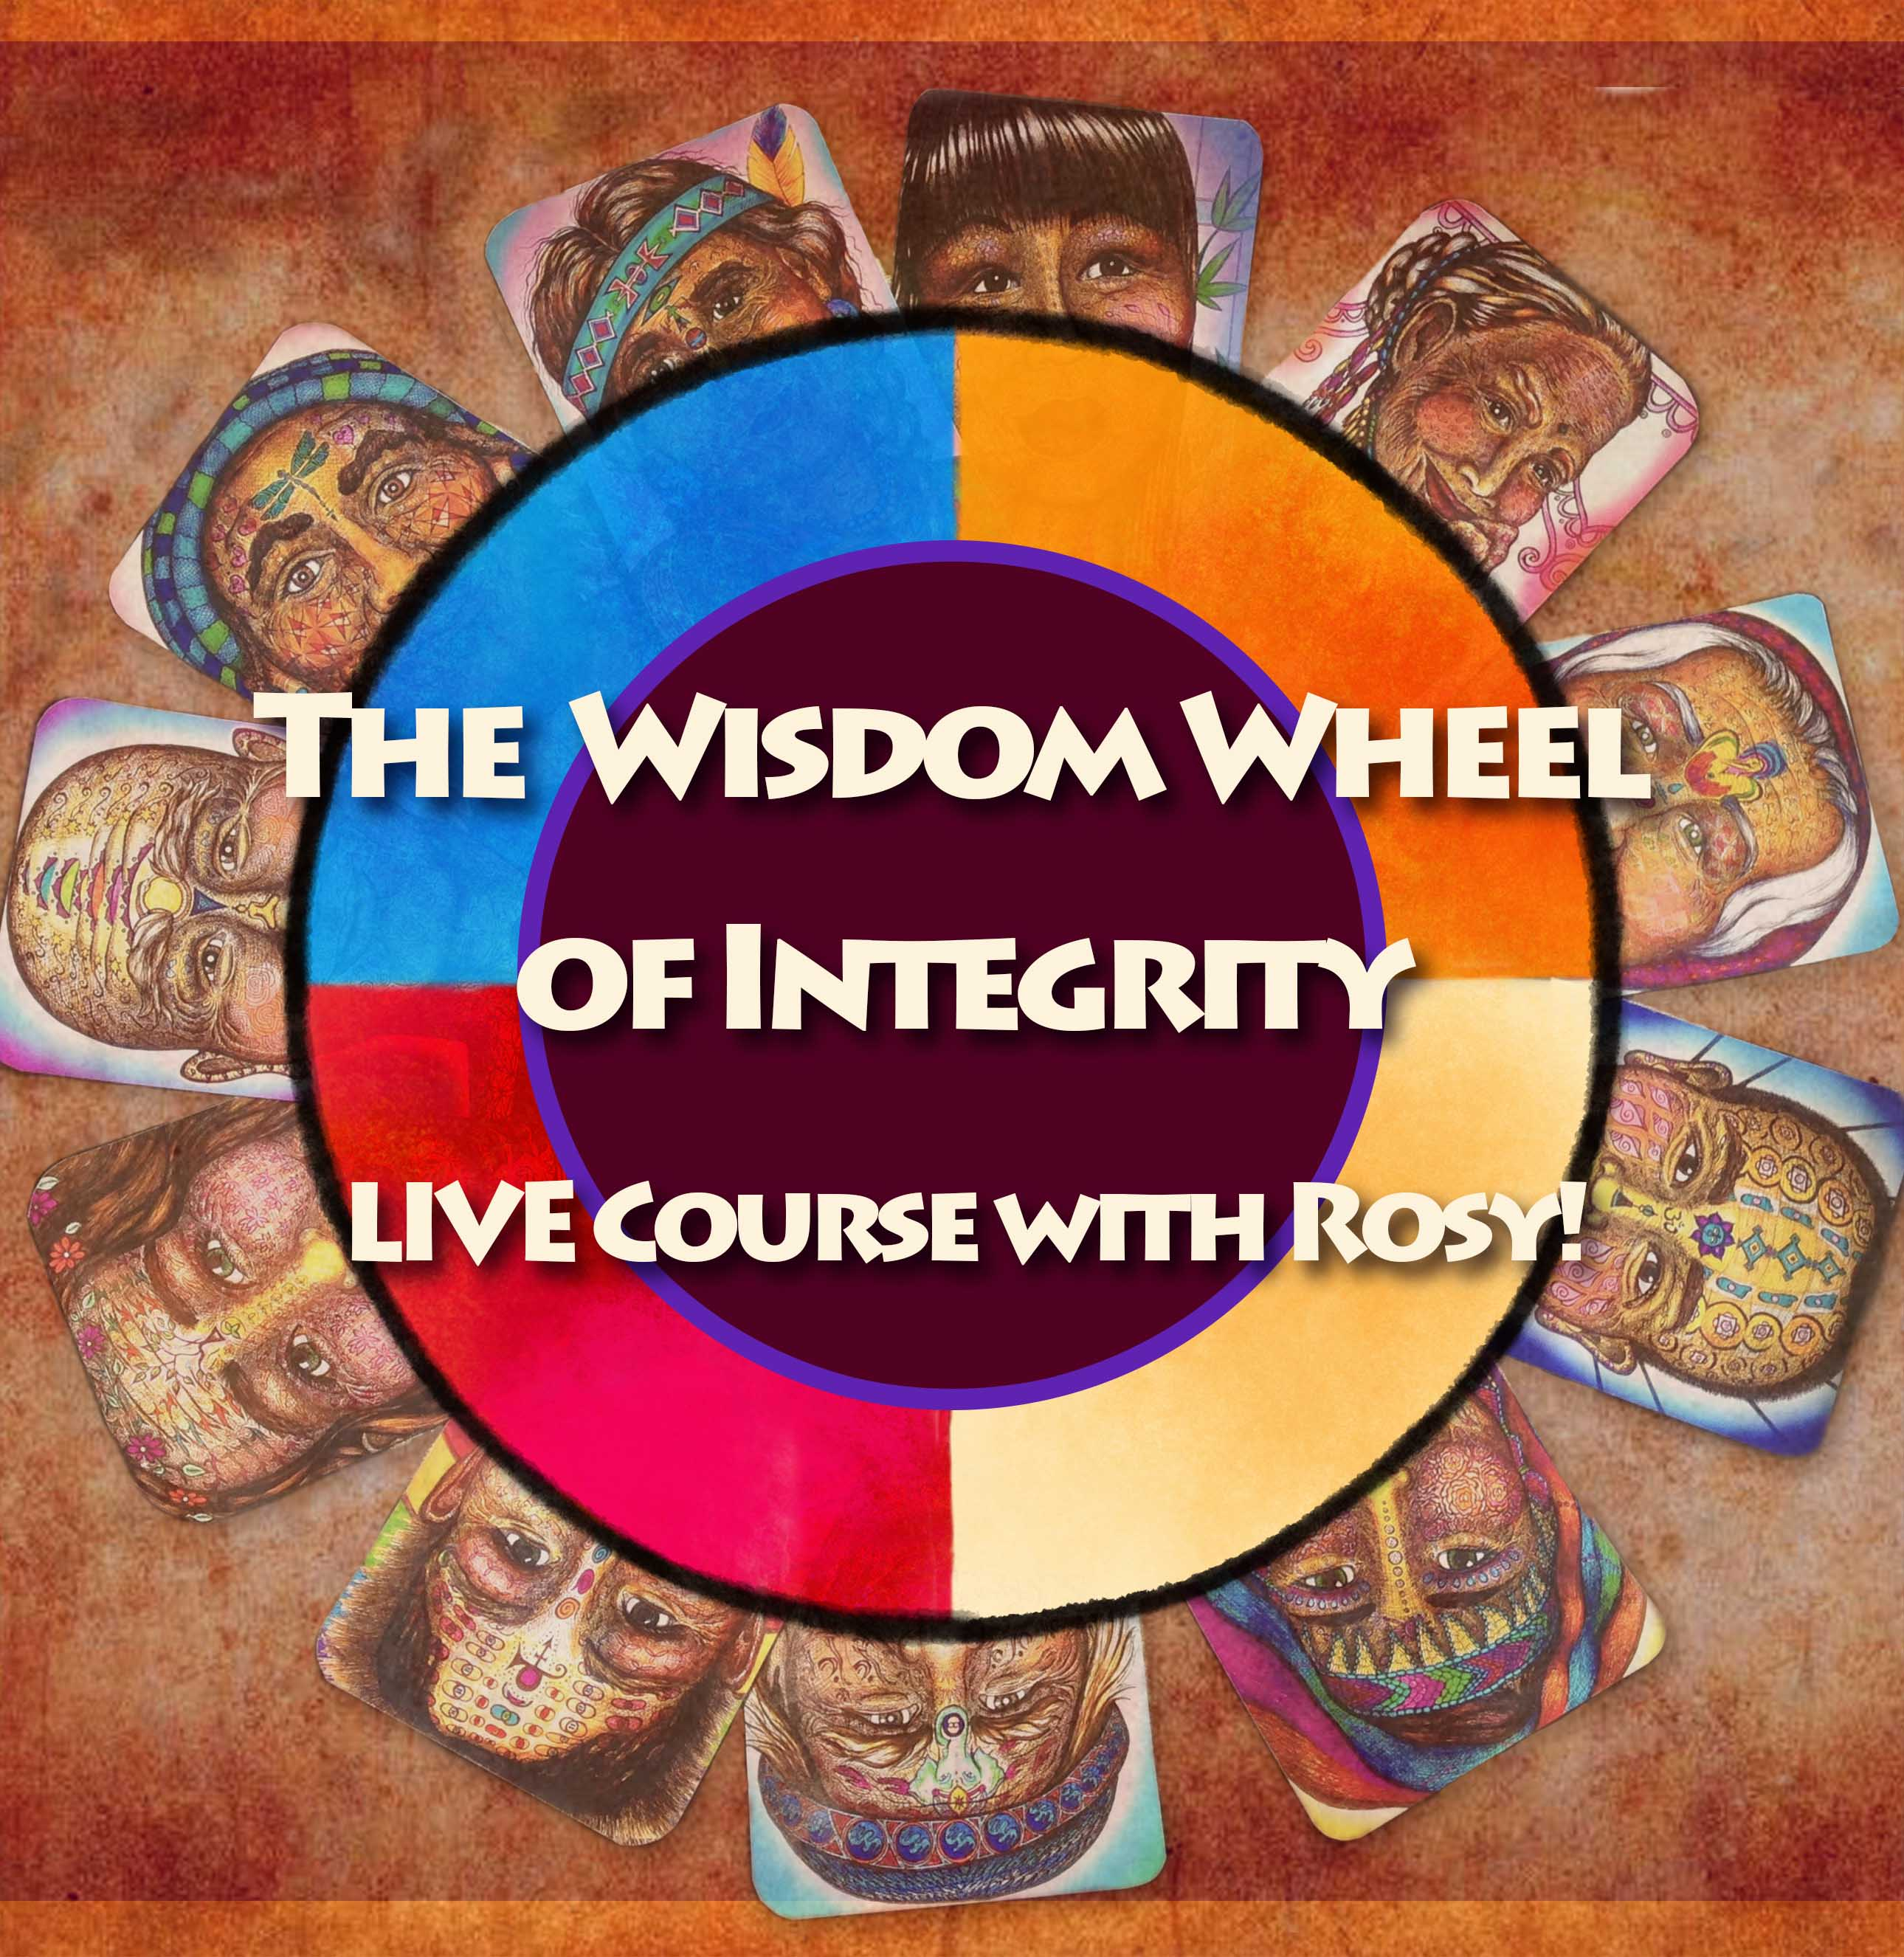 The Wisdom Wheel of Integrity Online Course - LIVE WITH ROSY